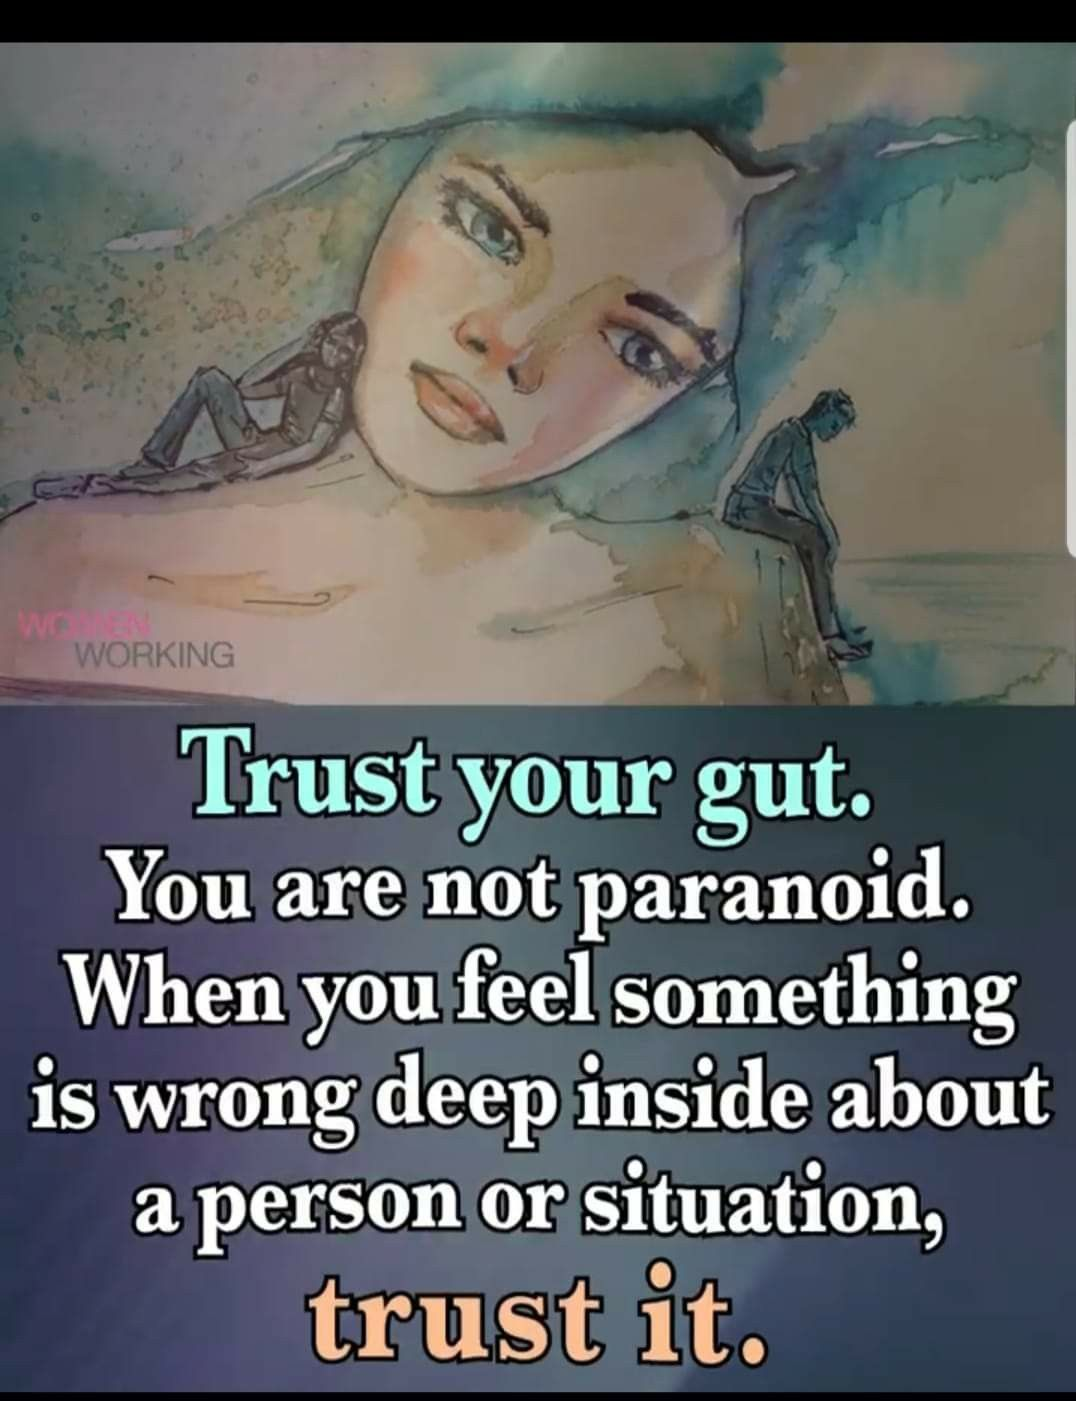 Memes About Trusting Your Gut